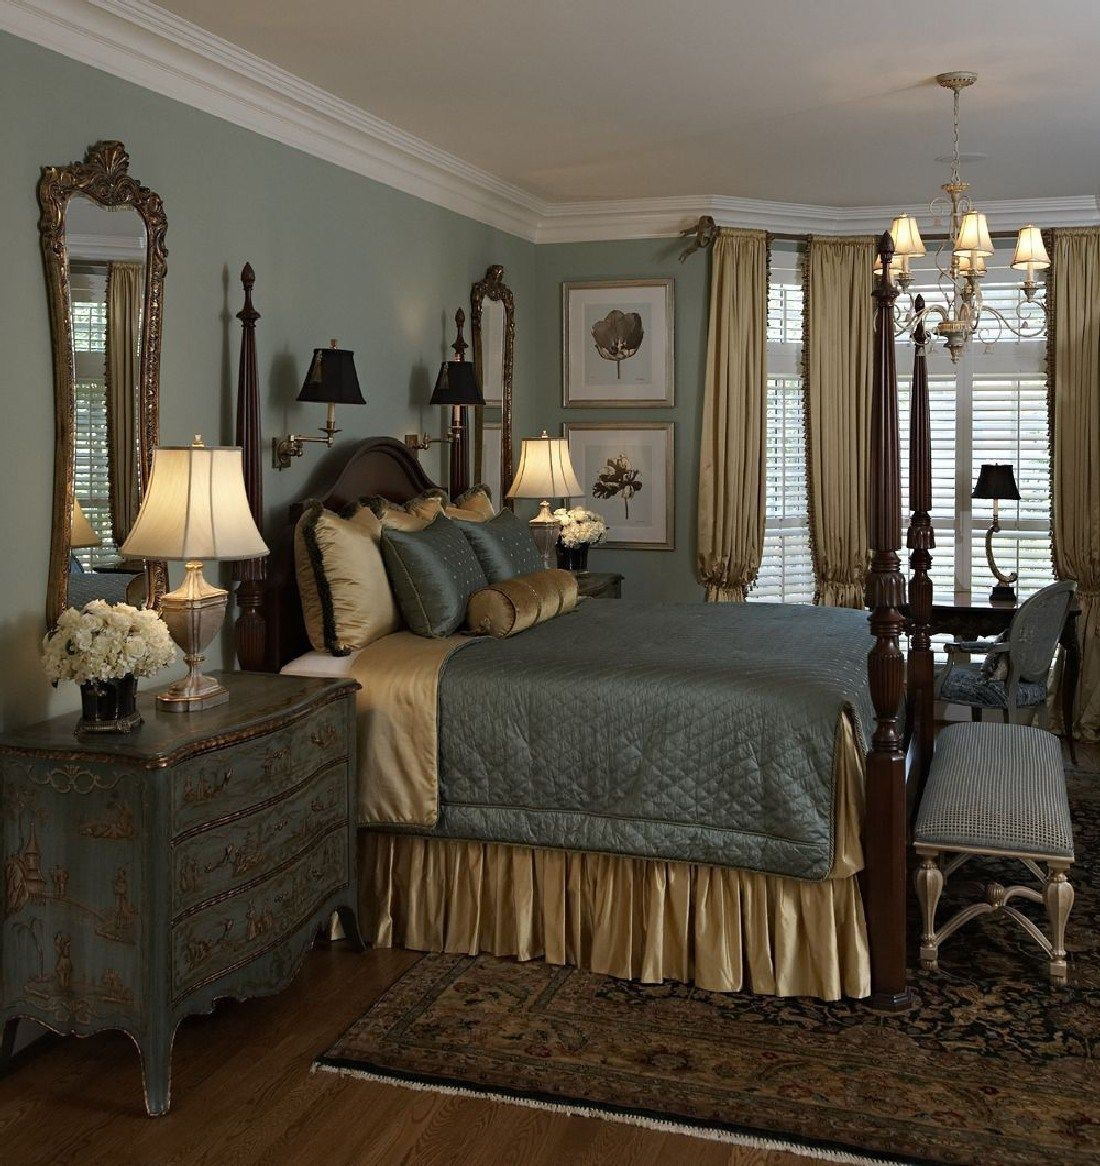 Turn Your Bedroom Into An Elegant And Classy Traditional Bedroom With These 25 Traditional Master Bedroom Ideas Traditional Bedroom Design Traditional Bedroom Traditional bedroom ideas photos